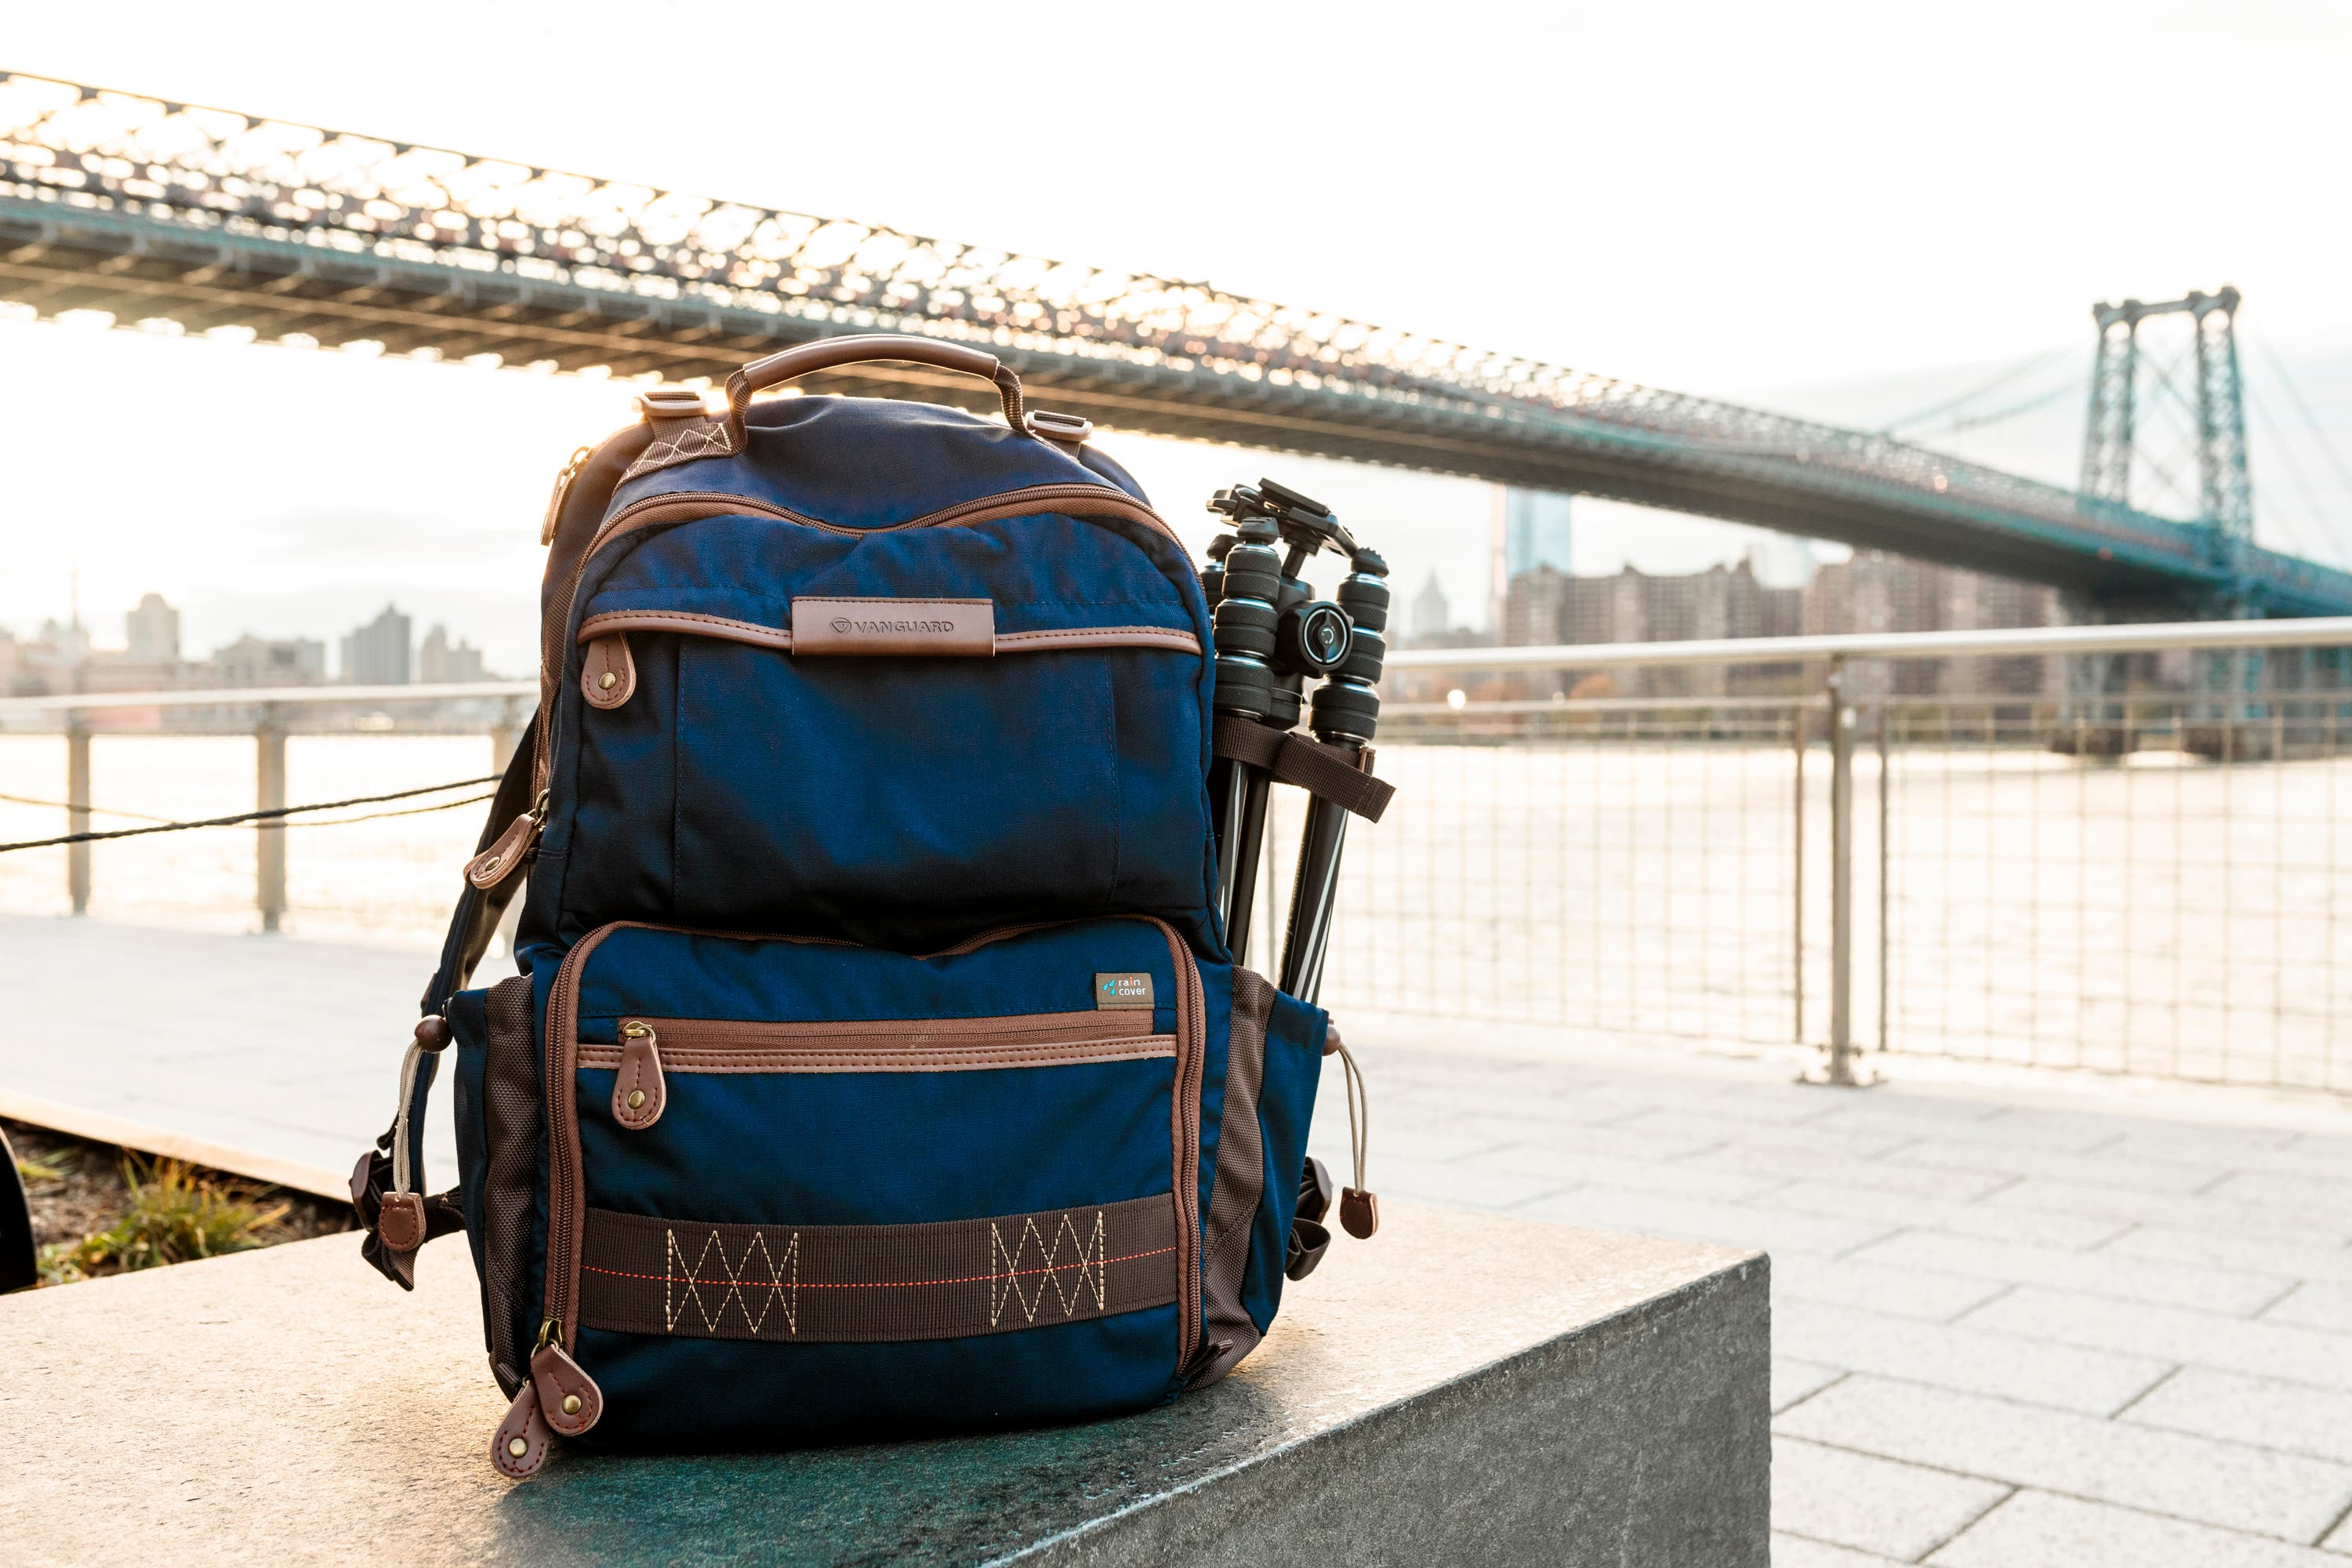 Review: Vanguard Havana 48 Blue Backpack (Their Best Backpack Yet)